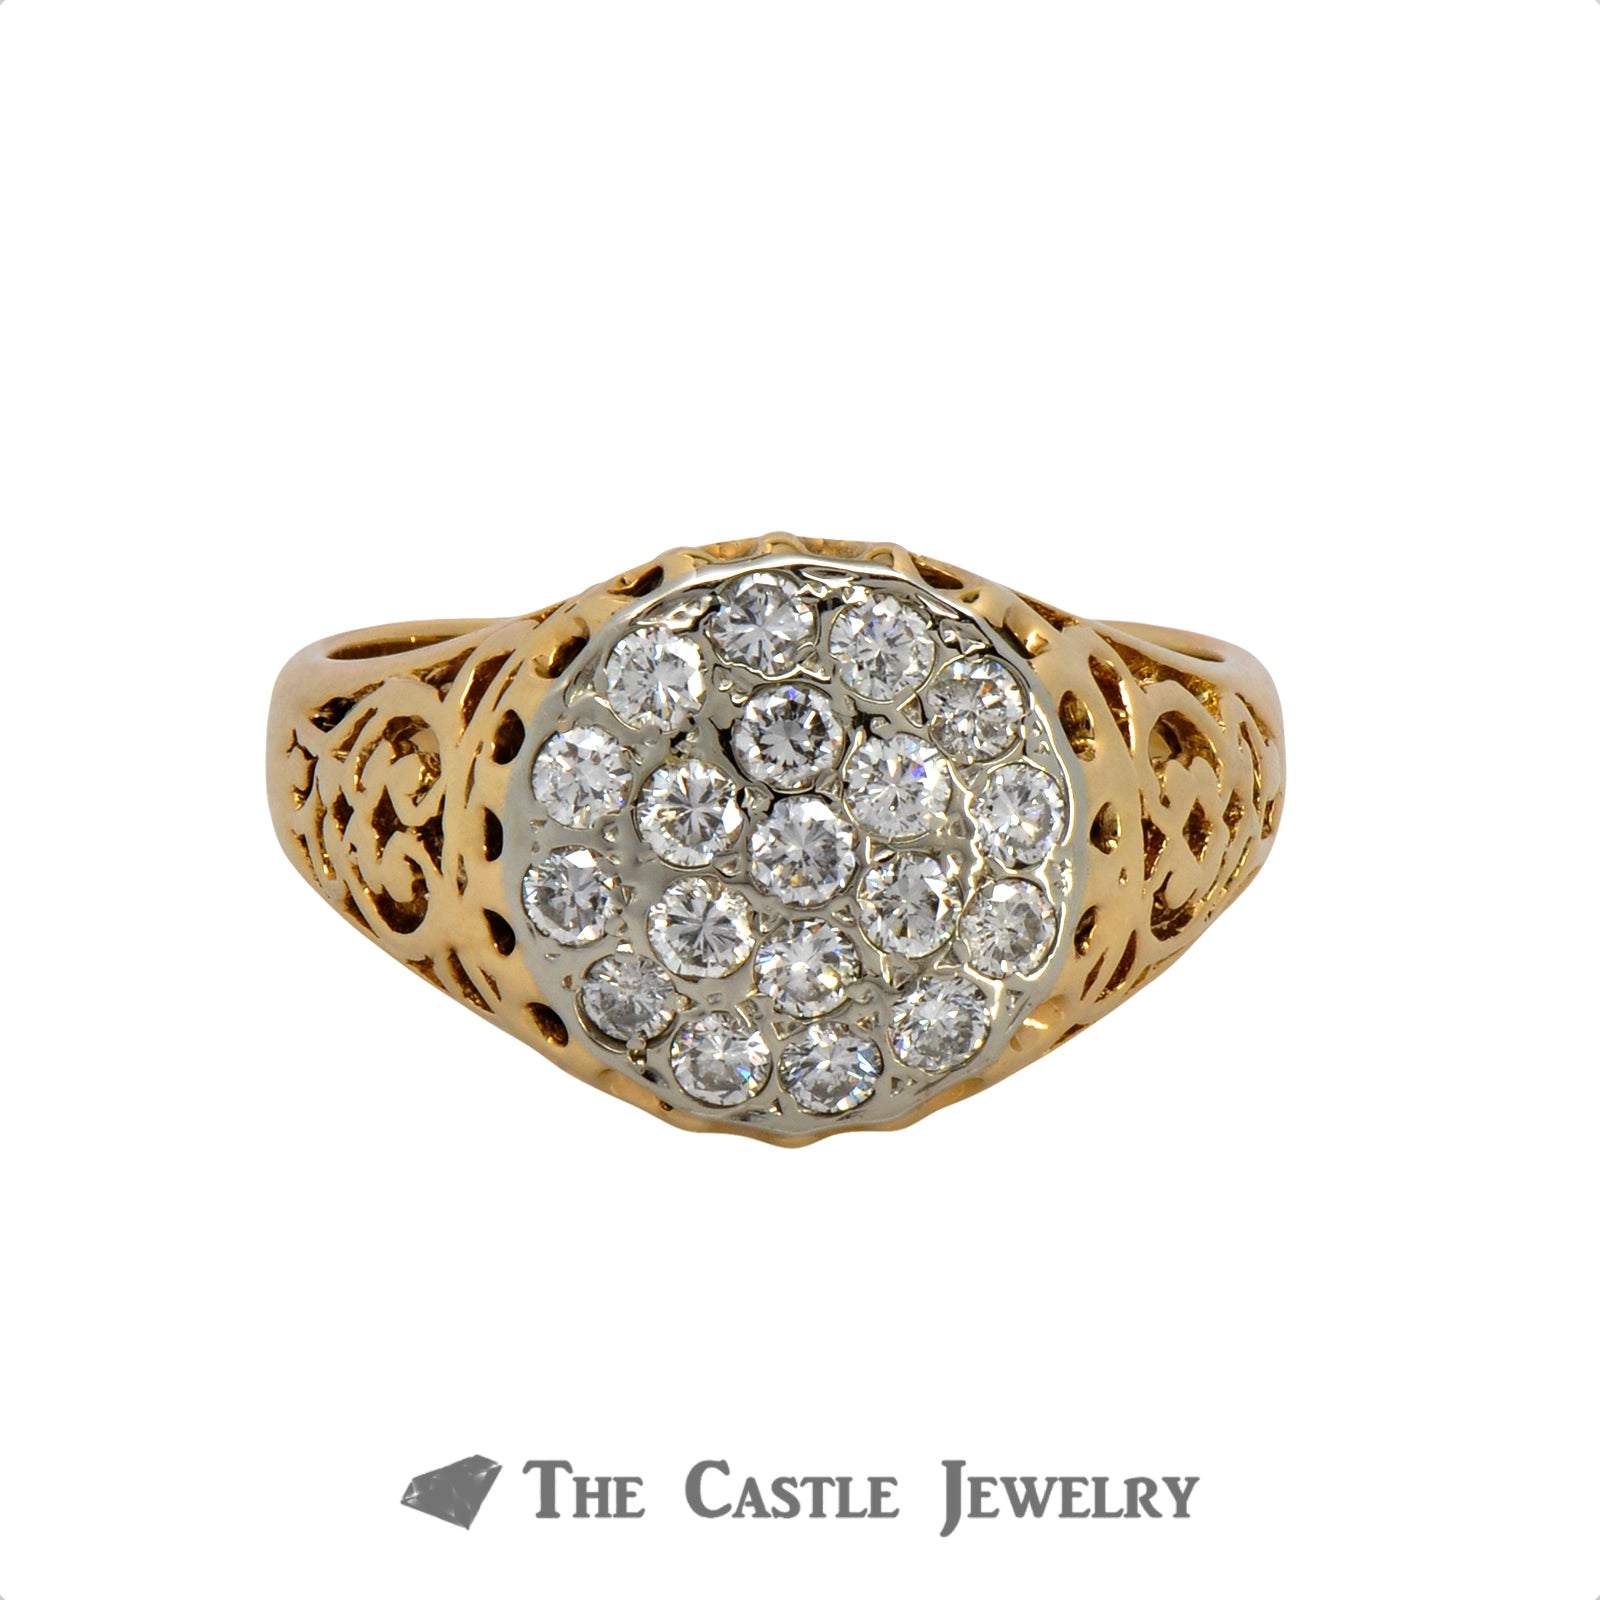 Flat Set 1cttw Diamond Kentucky Cluster Ring in 14K Yellow Gold